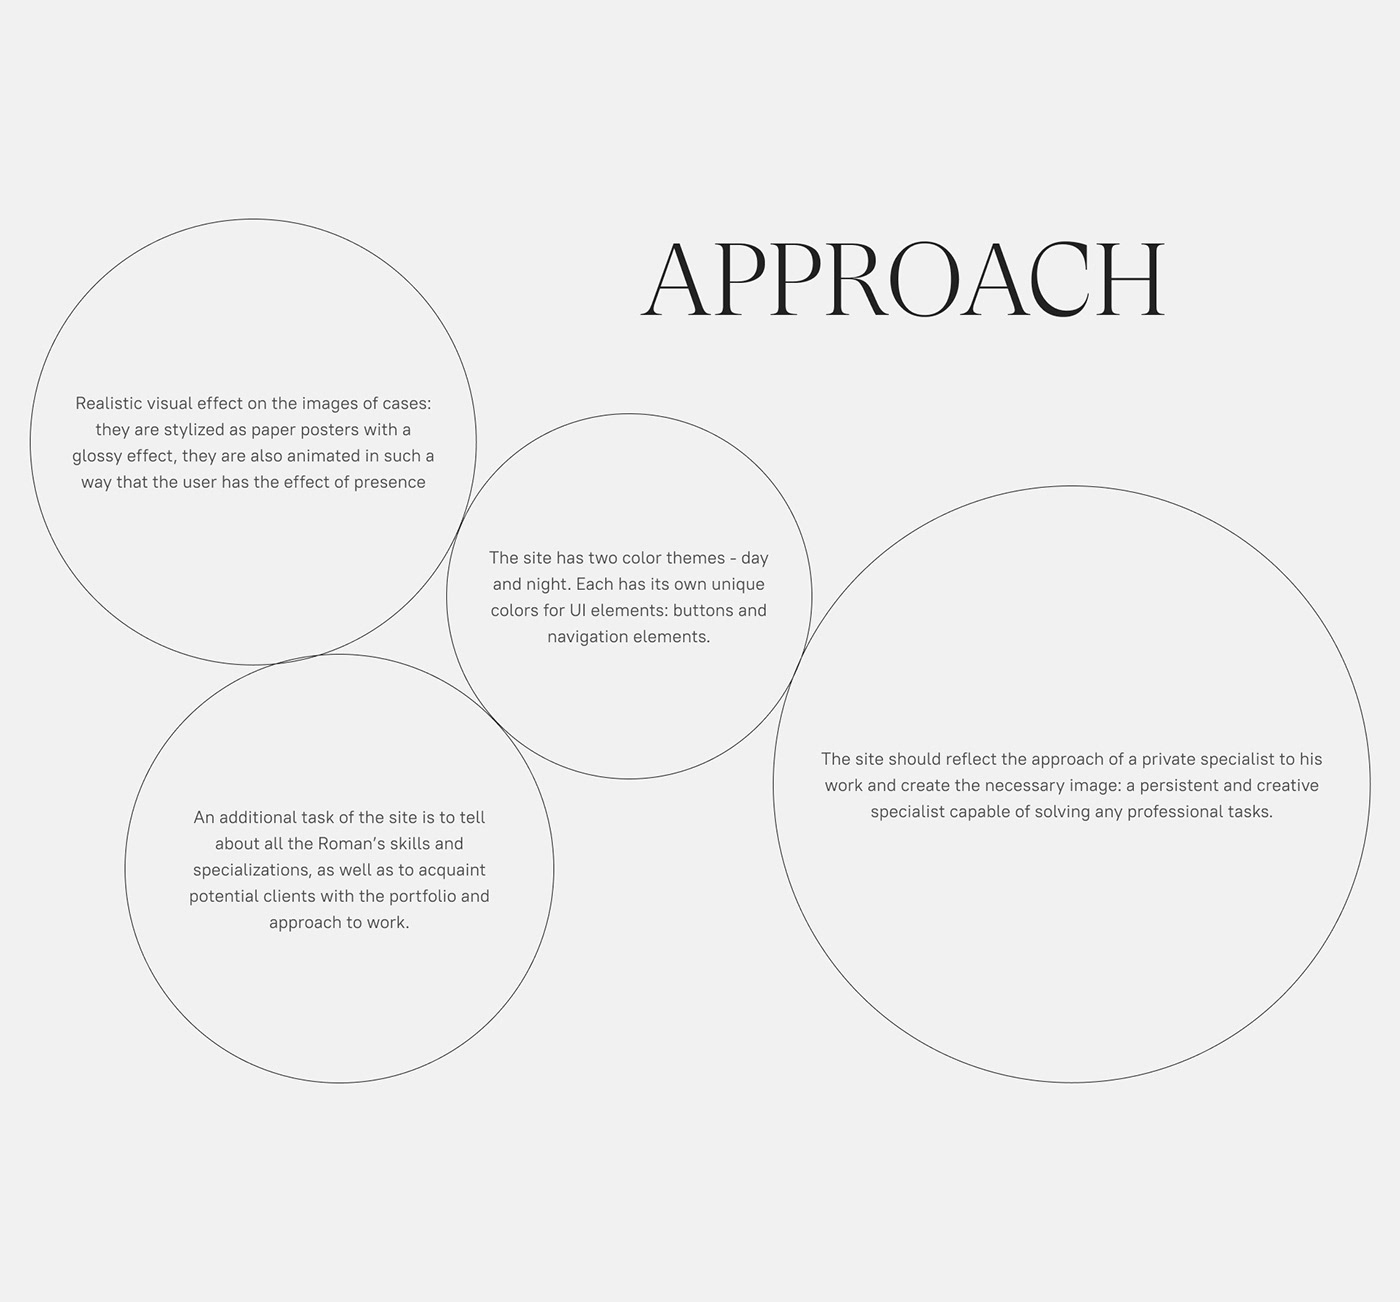 animations fonts grid interactions IT motion UI ux Web Design